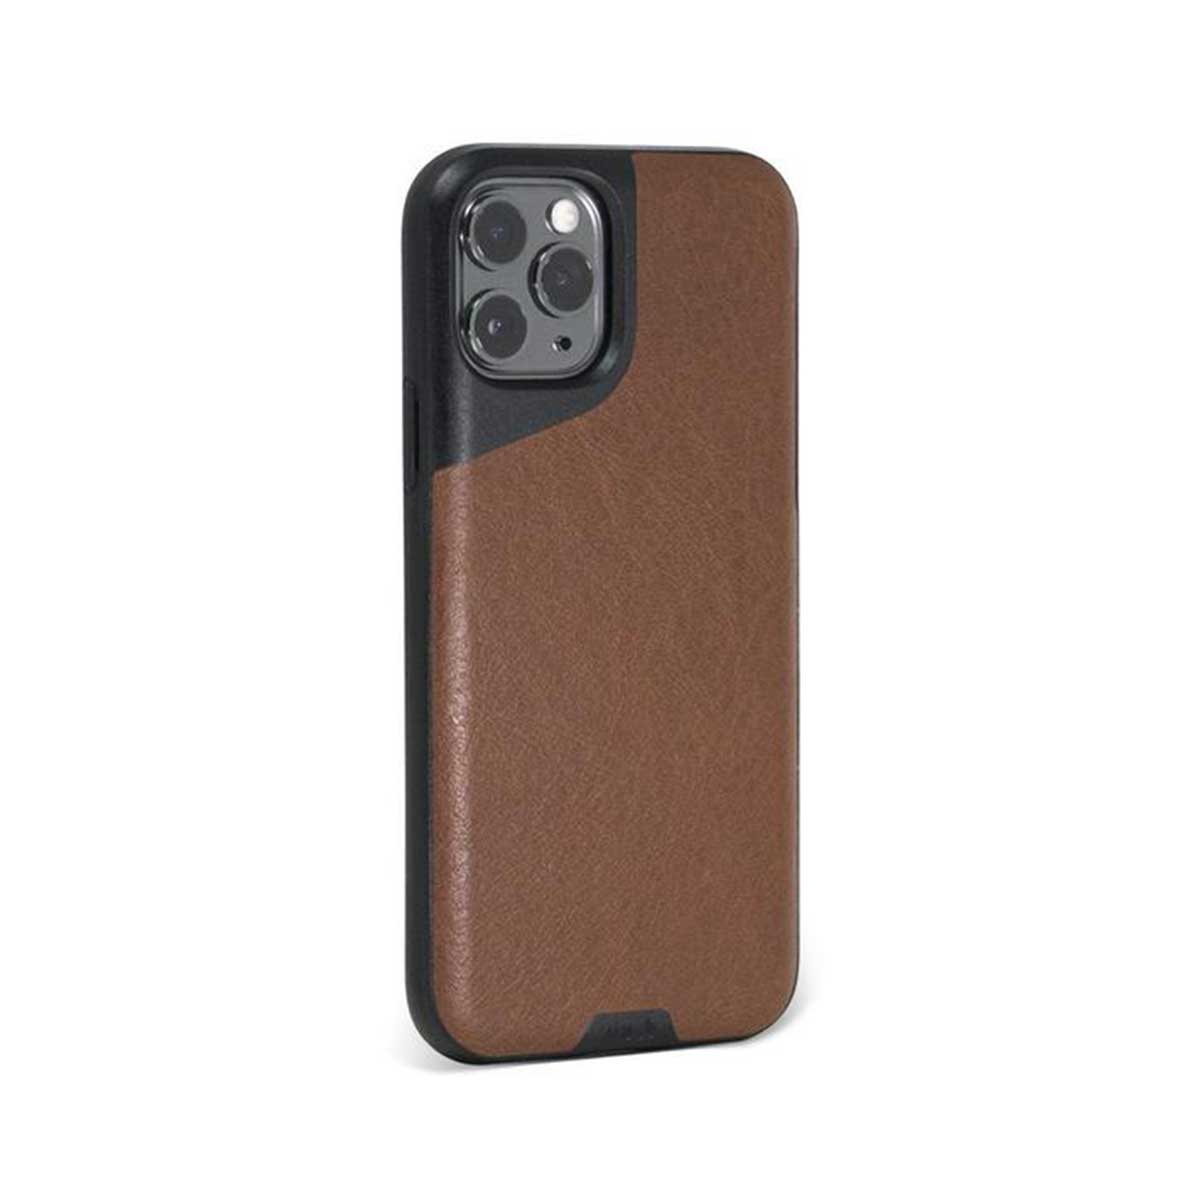 Mous - Contour Case for iPhone 11 Pro - Brown Leather